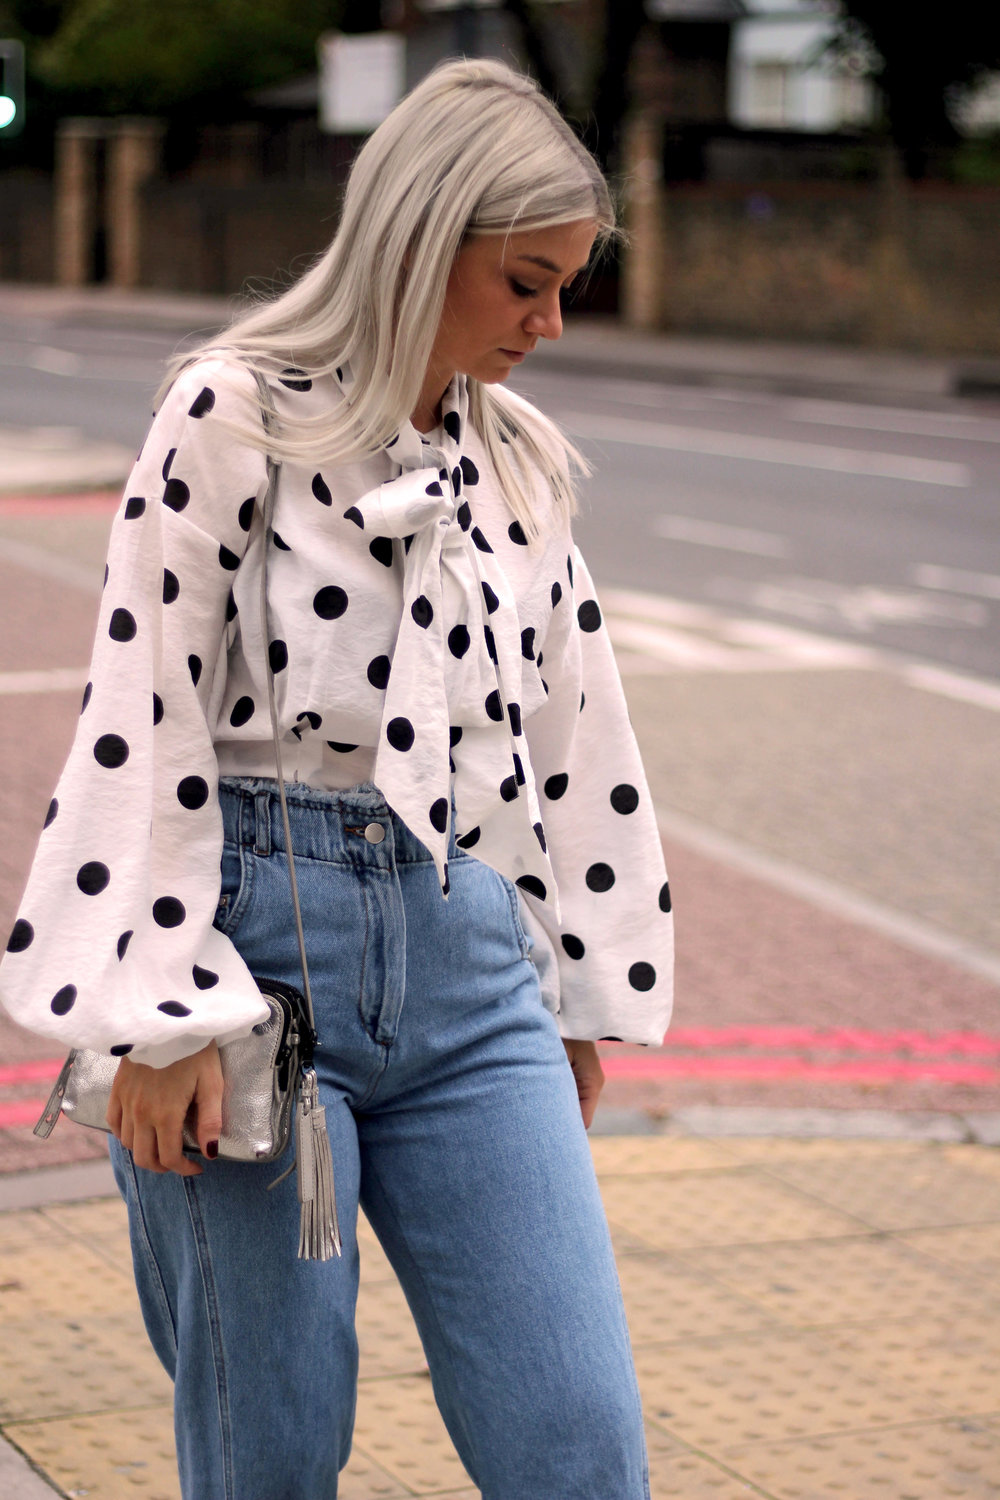 PUSSY BOW POLKA DOT BLOUSE, WIDE LEG FRAYED TOPSHOP JEANS, BLACK ANKLE BOOTS, NORTHERN MAGPIE, JOEY TAYLOR 6